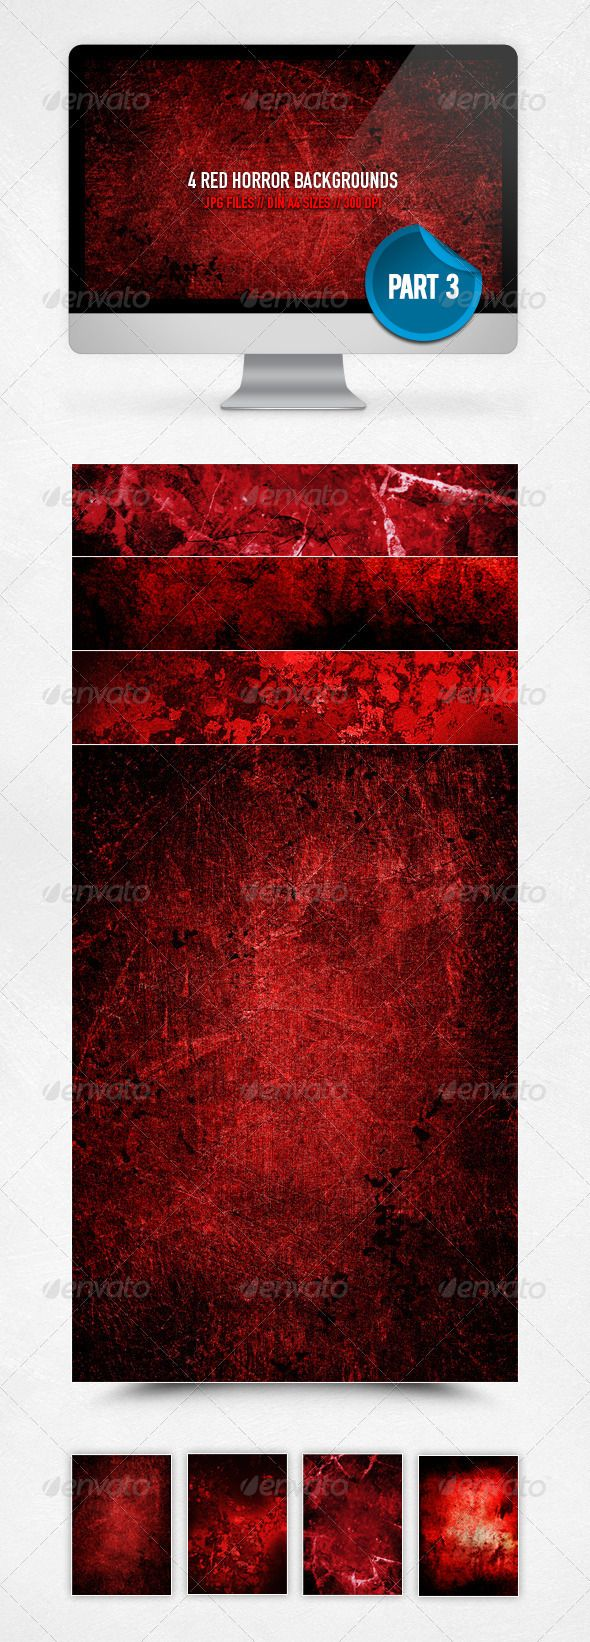 Red Horror Backgrounds - Part 3,a4, backgrounds, black, concrete, design, DIN A4, dirty, flyer, grunge, high resolution, horror, metal, poster, print, red, texture, underground, web